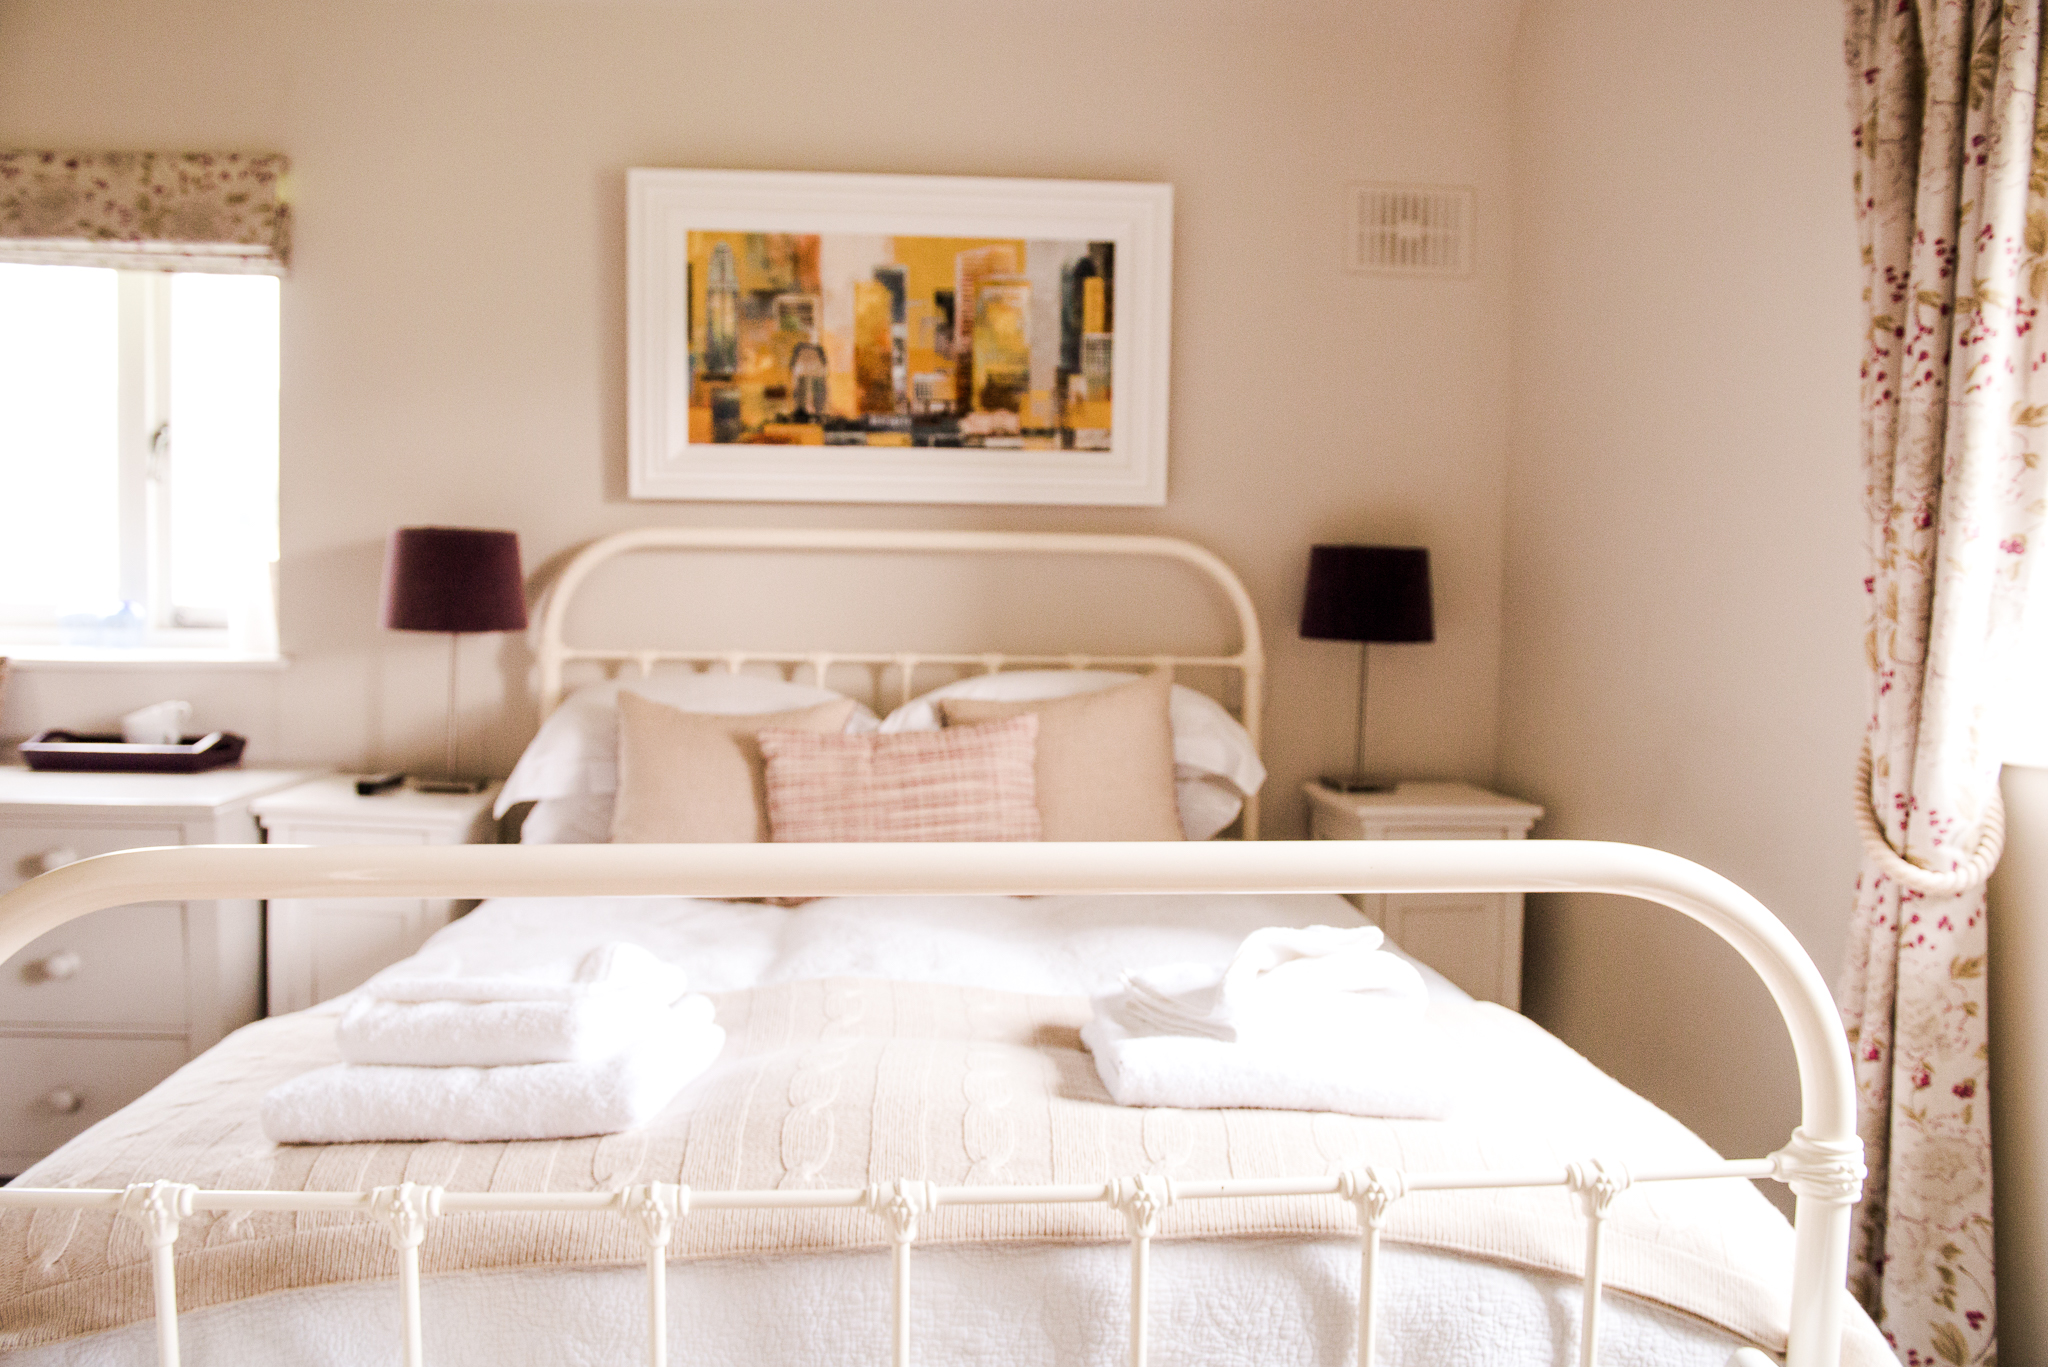 Room 3 - Room 3 is one of our most spacious rooms. This corner-side bedroom has large windows on both walls overlooking at The South Downs National Park, a large comfortable bed,a large sofa, and a private bathroom with a luxurious shower.This room can only be booked as a double.